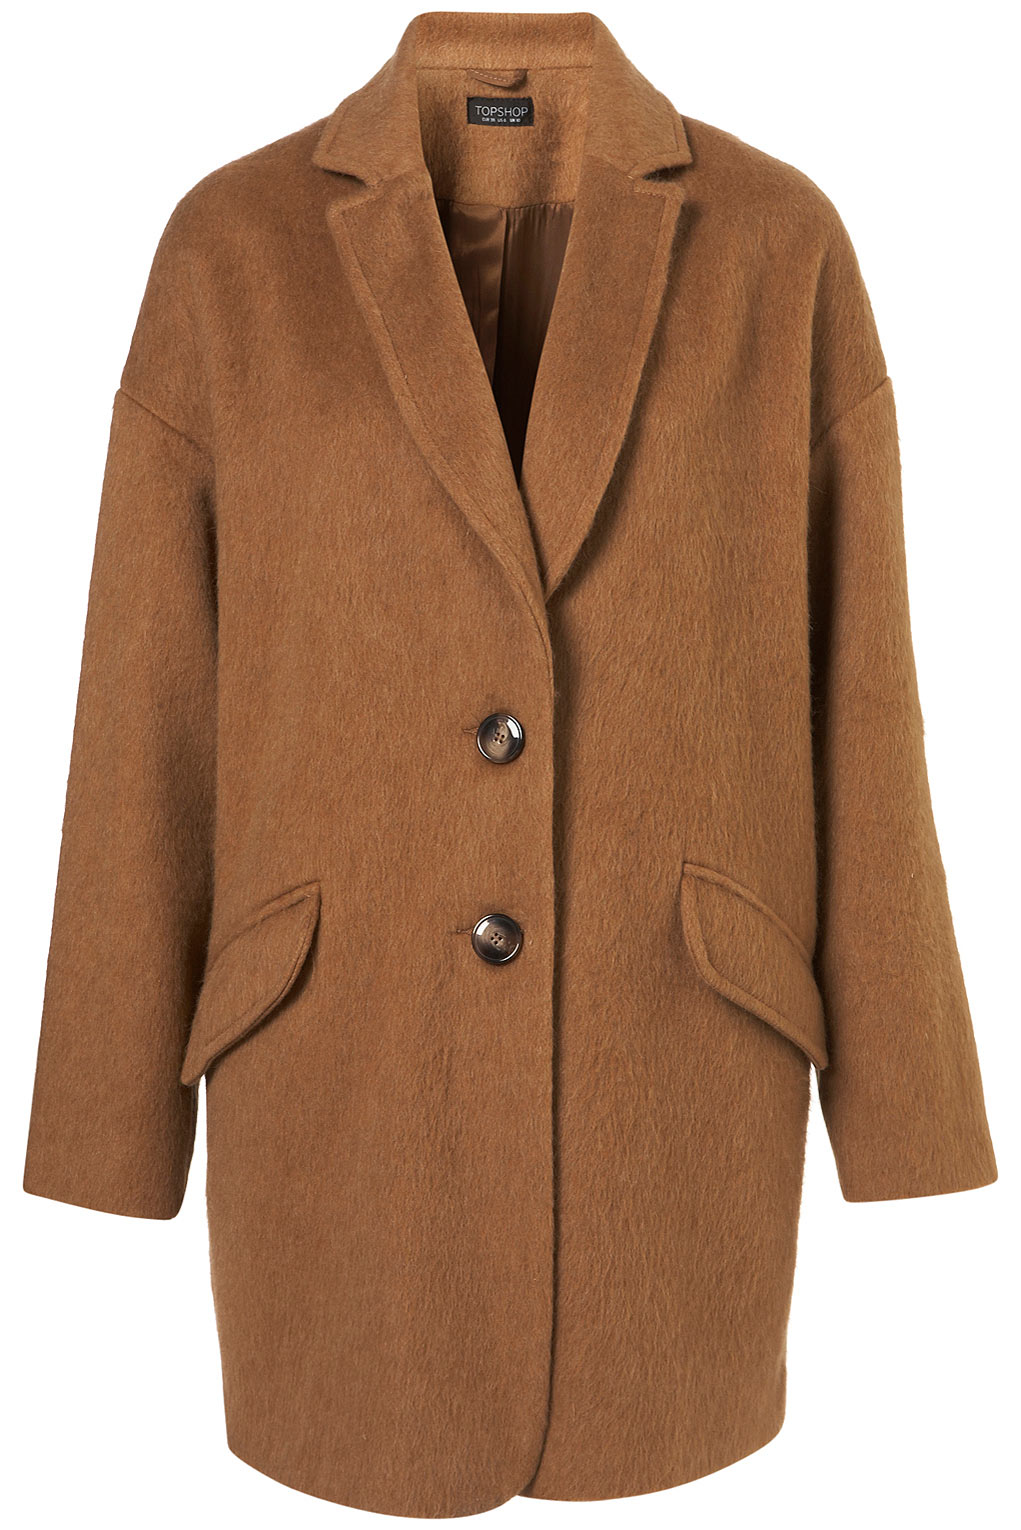 Topshop Mohair Boyfriend Coat in Brown | Lyst